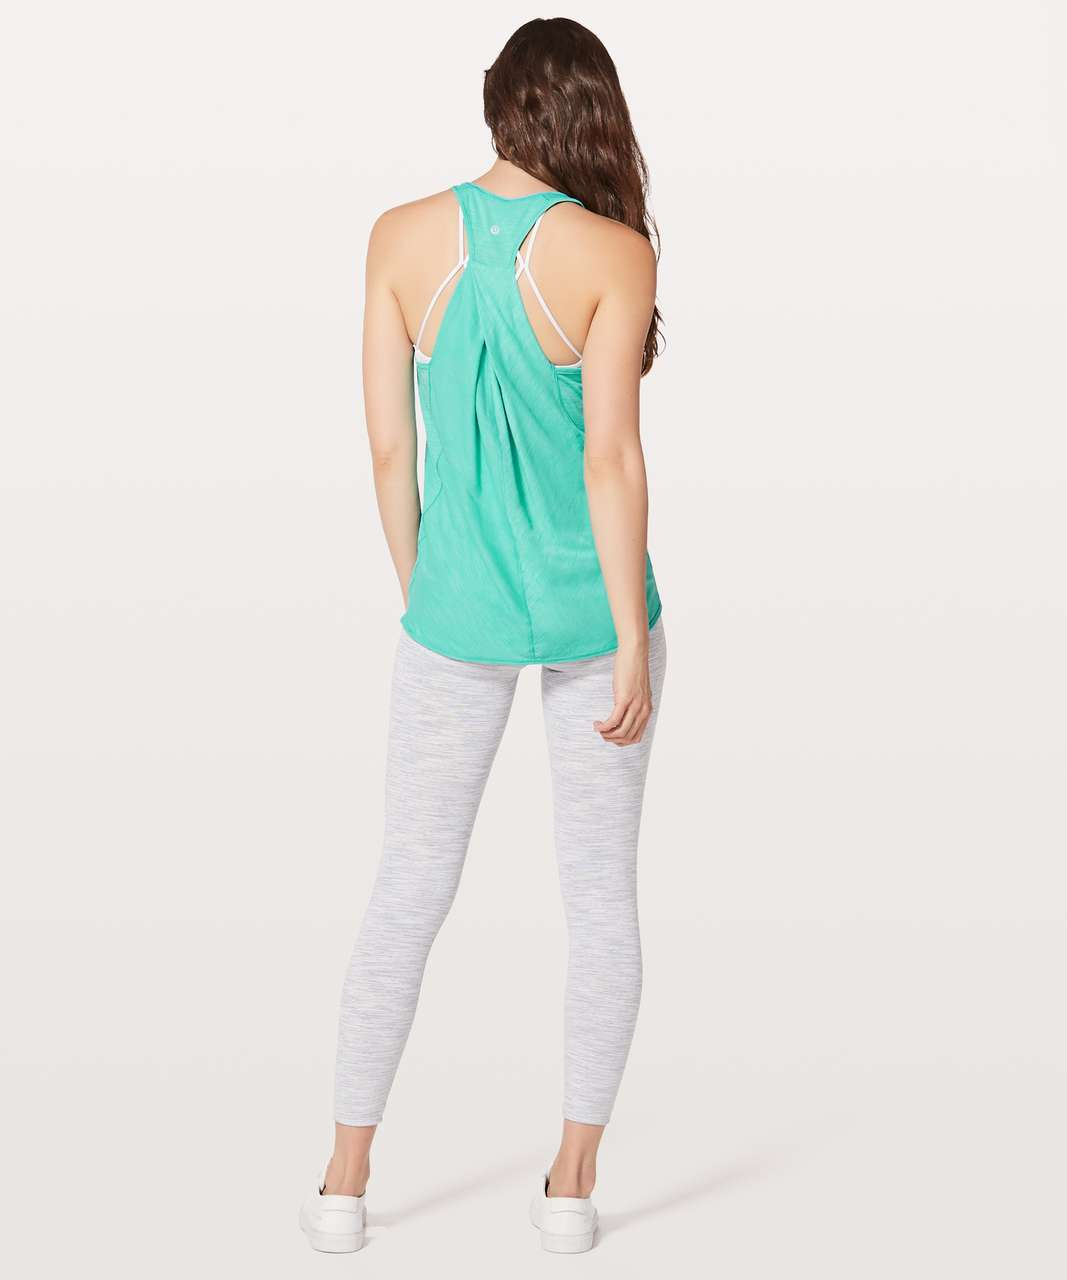 Lululemon Essential Tank - Heathered Eucalyptus